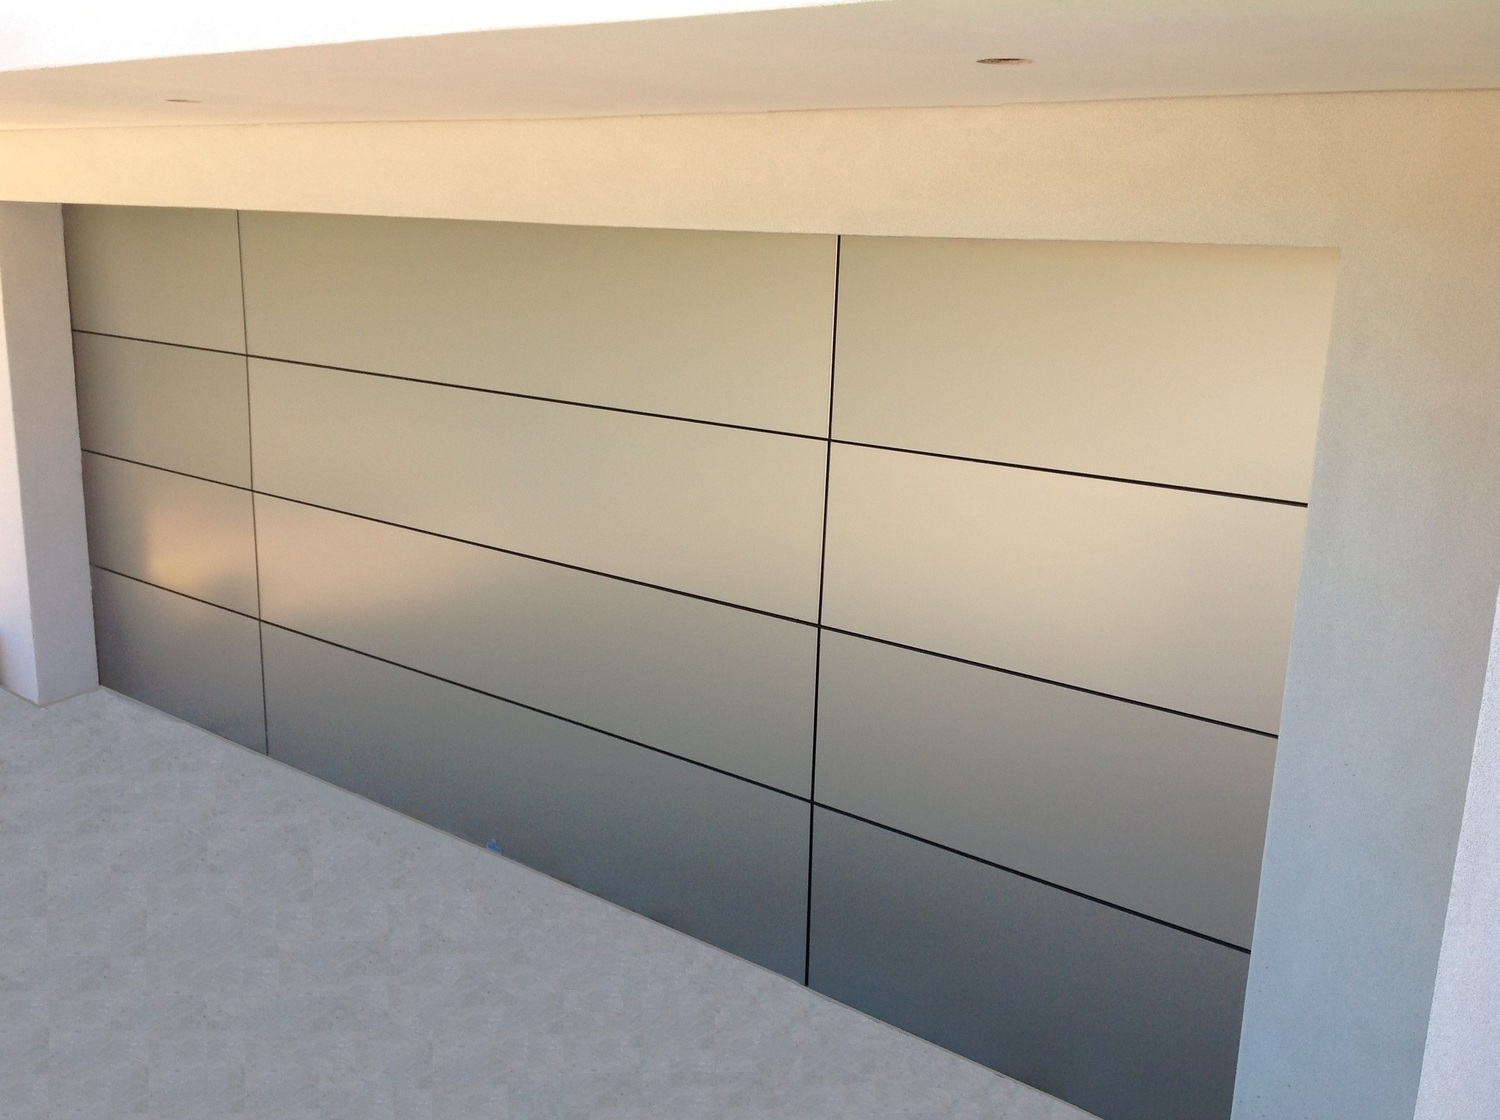 Aluminium Composite Sectional Overhead Door (one click on image to enlarge)